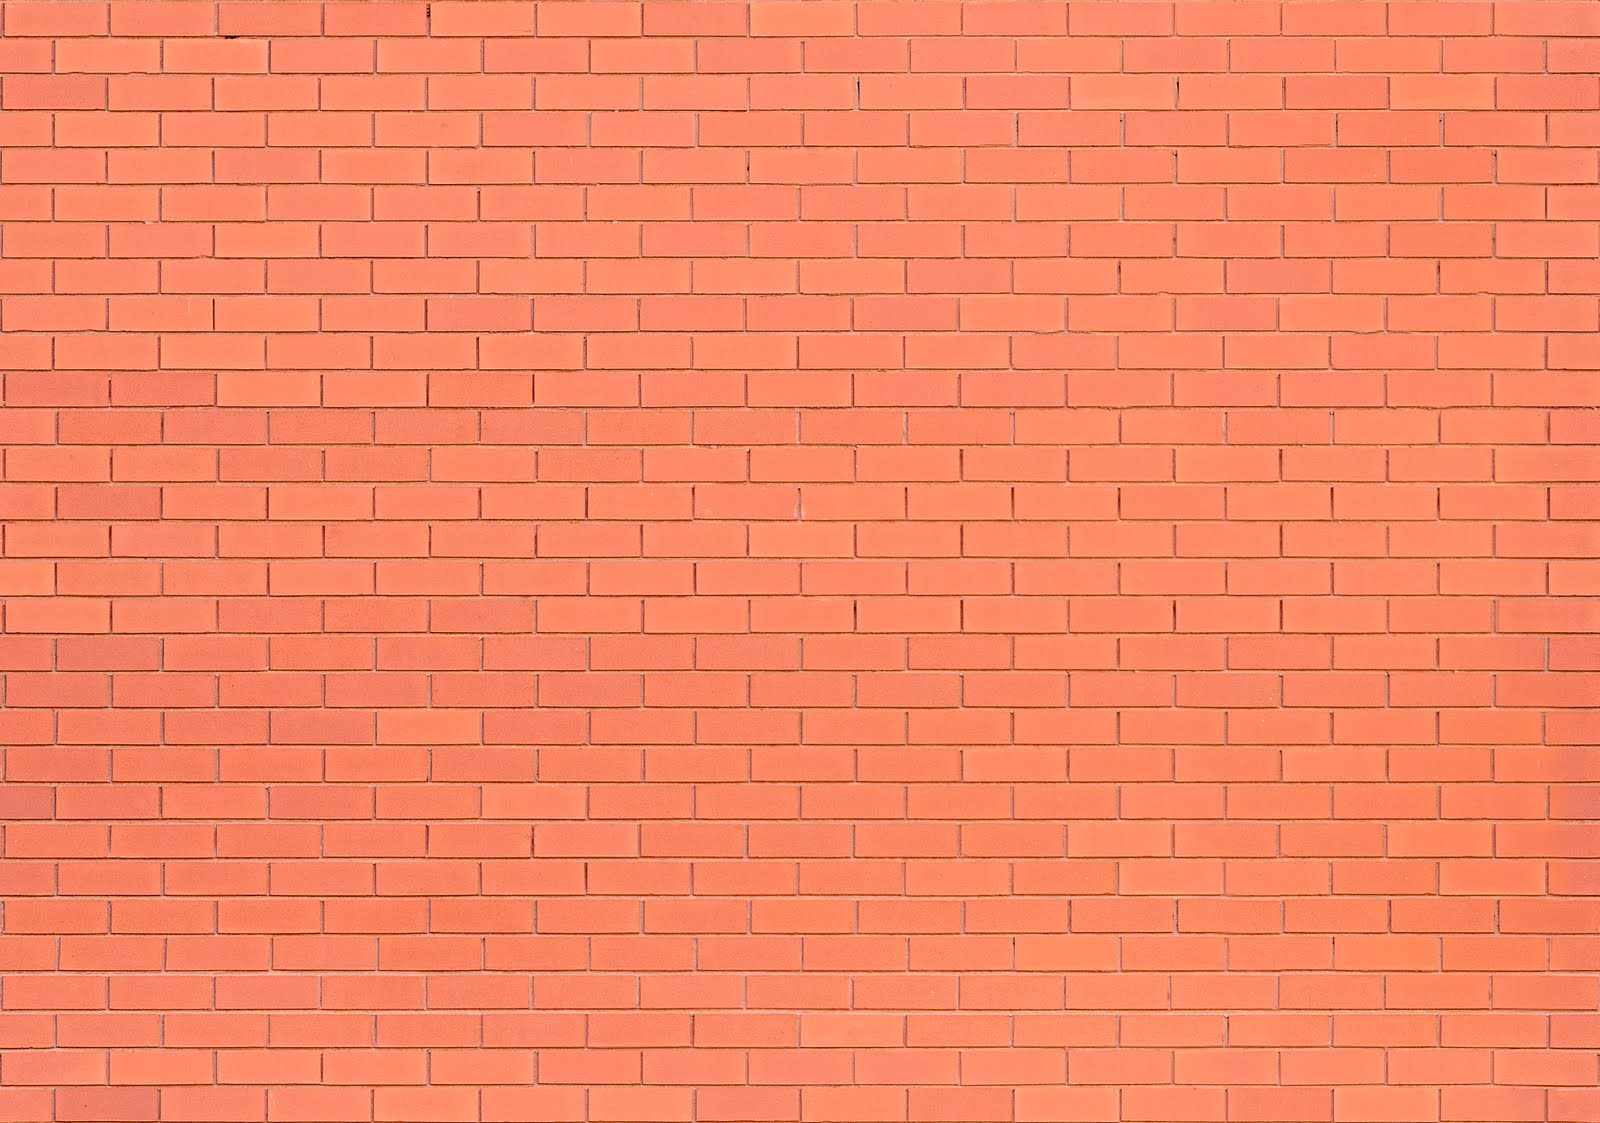 pink brick wall, texture, bricks, brick wall texture, background, download